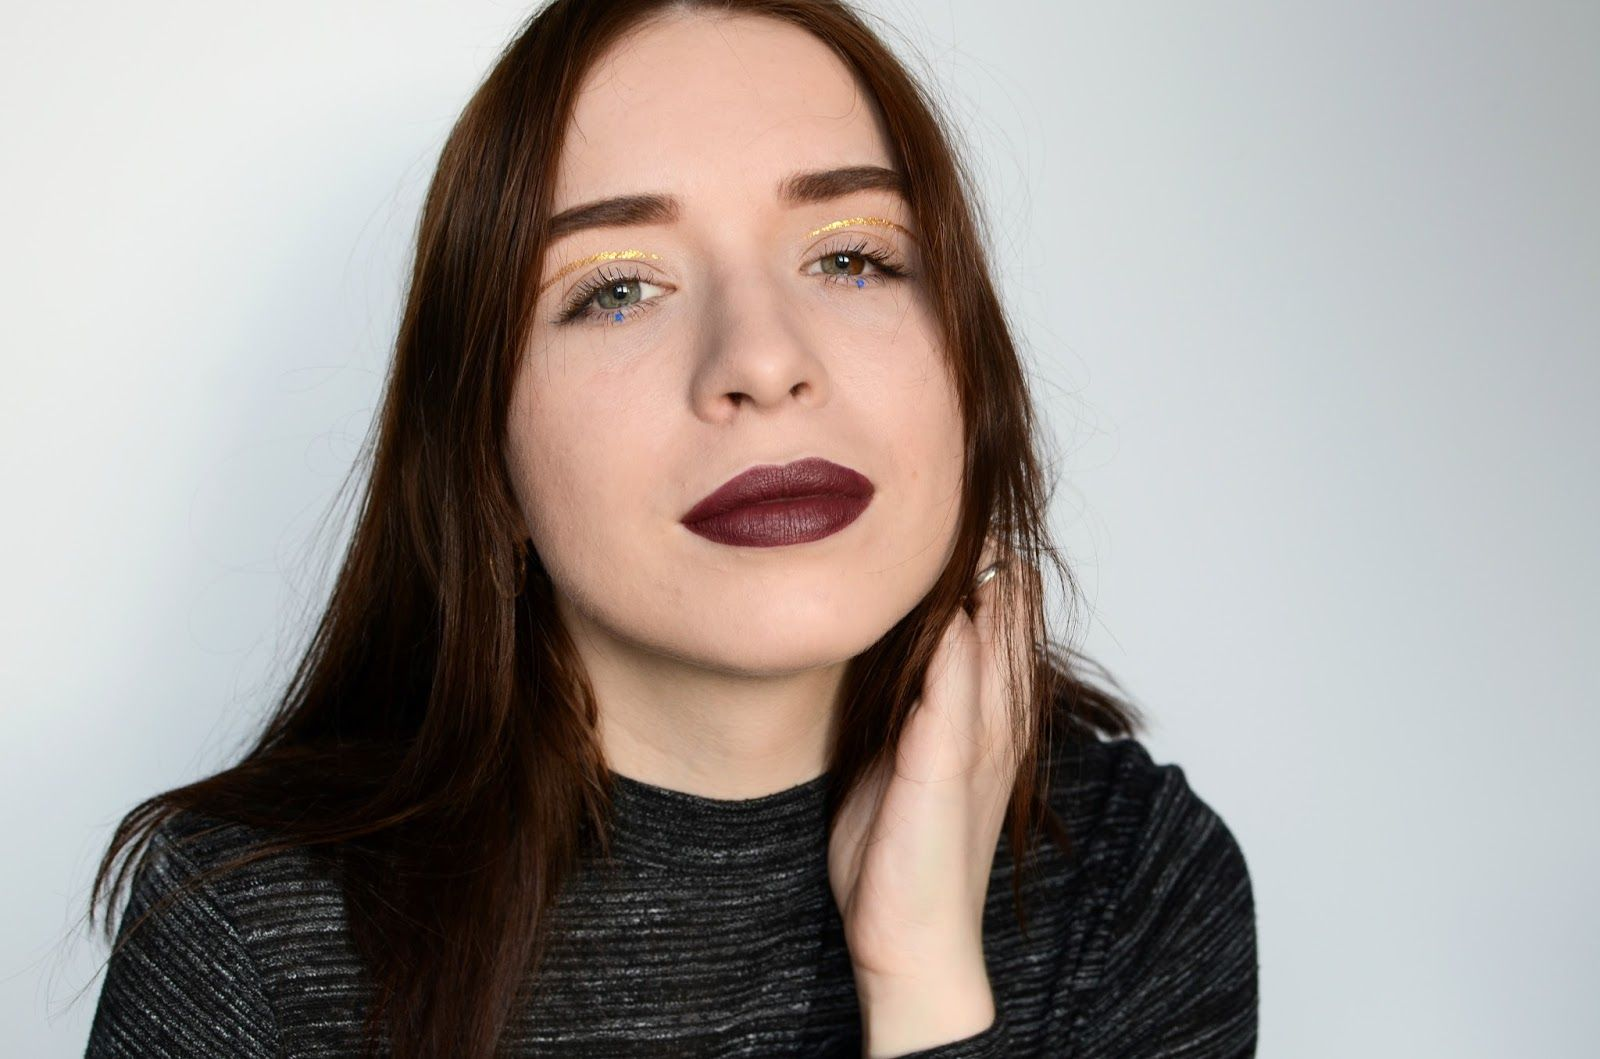 Always been a big fan of minimal - graphic makeup looks d678f4a12b423